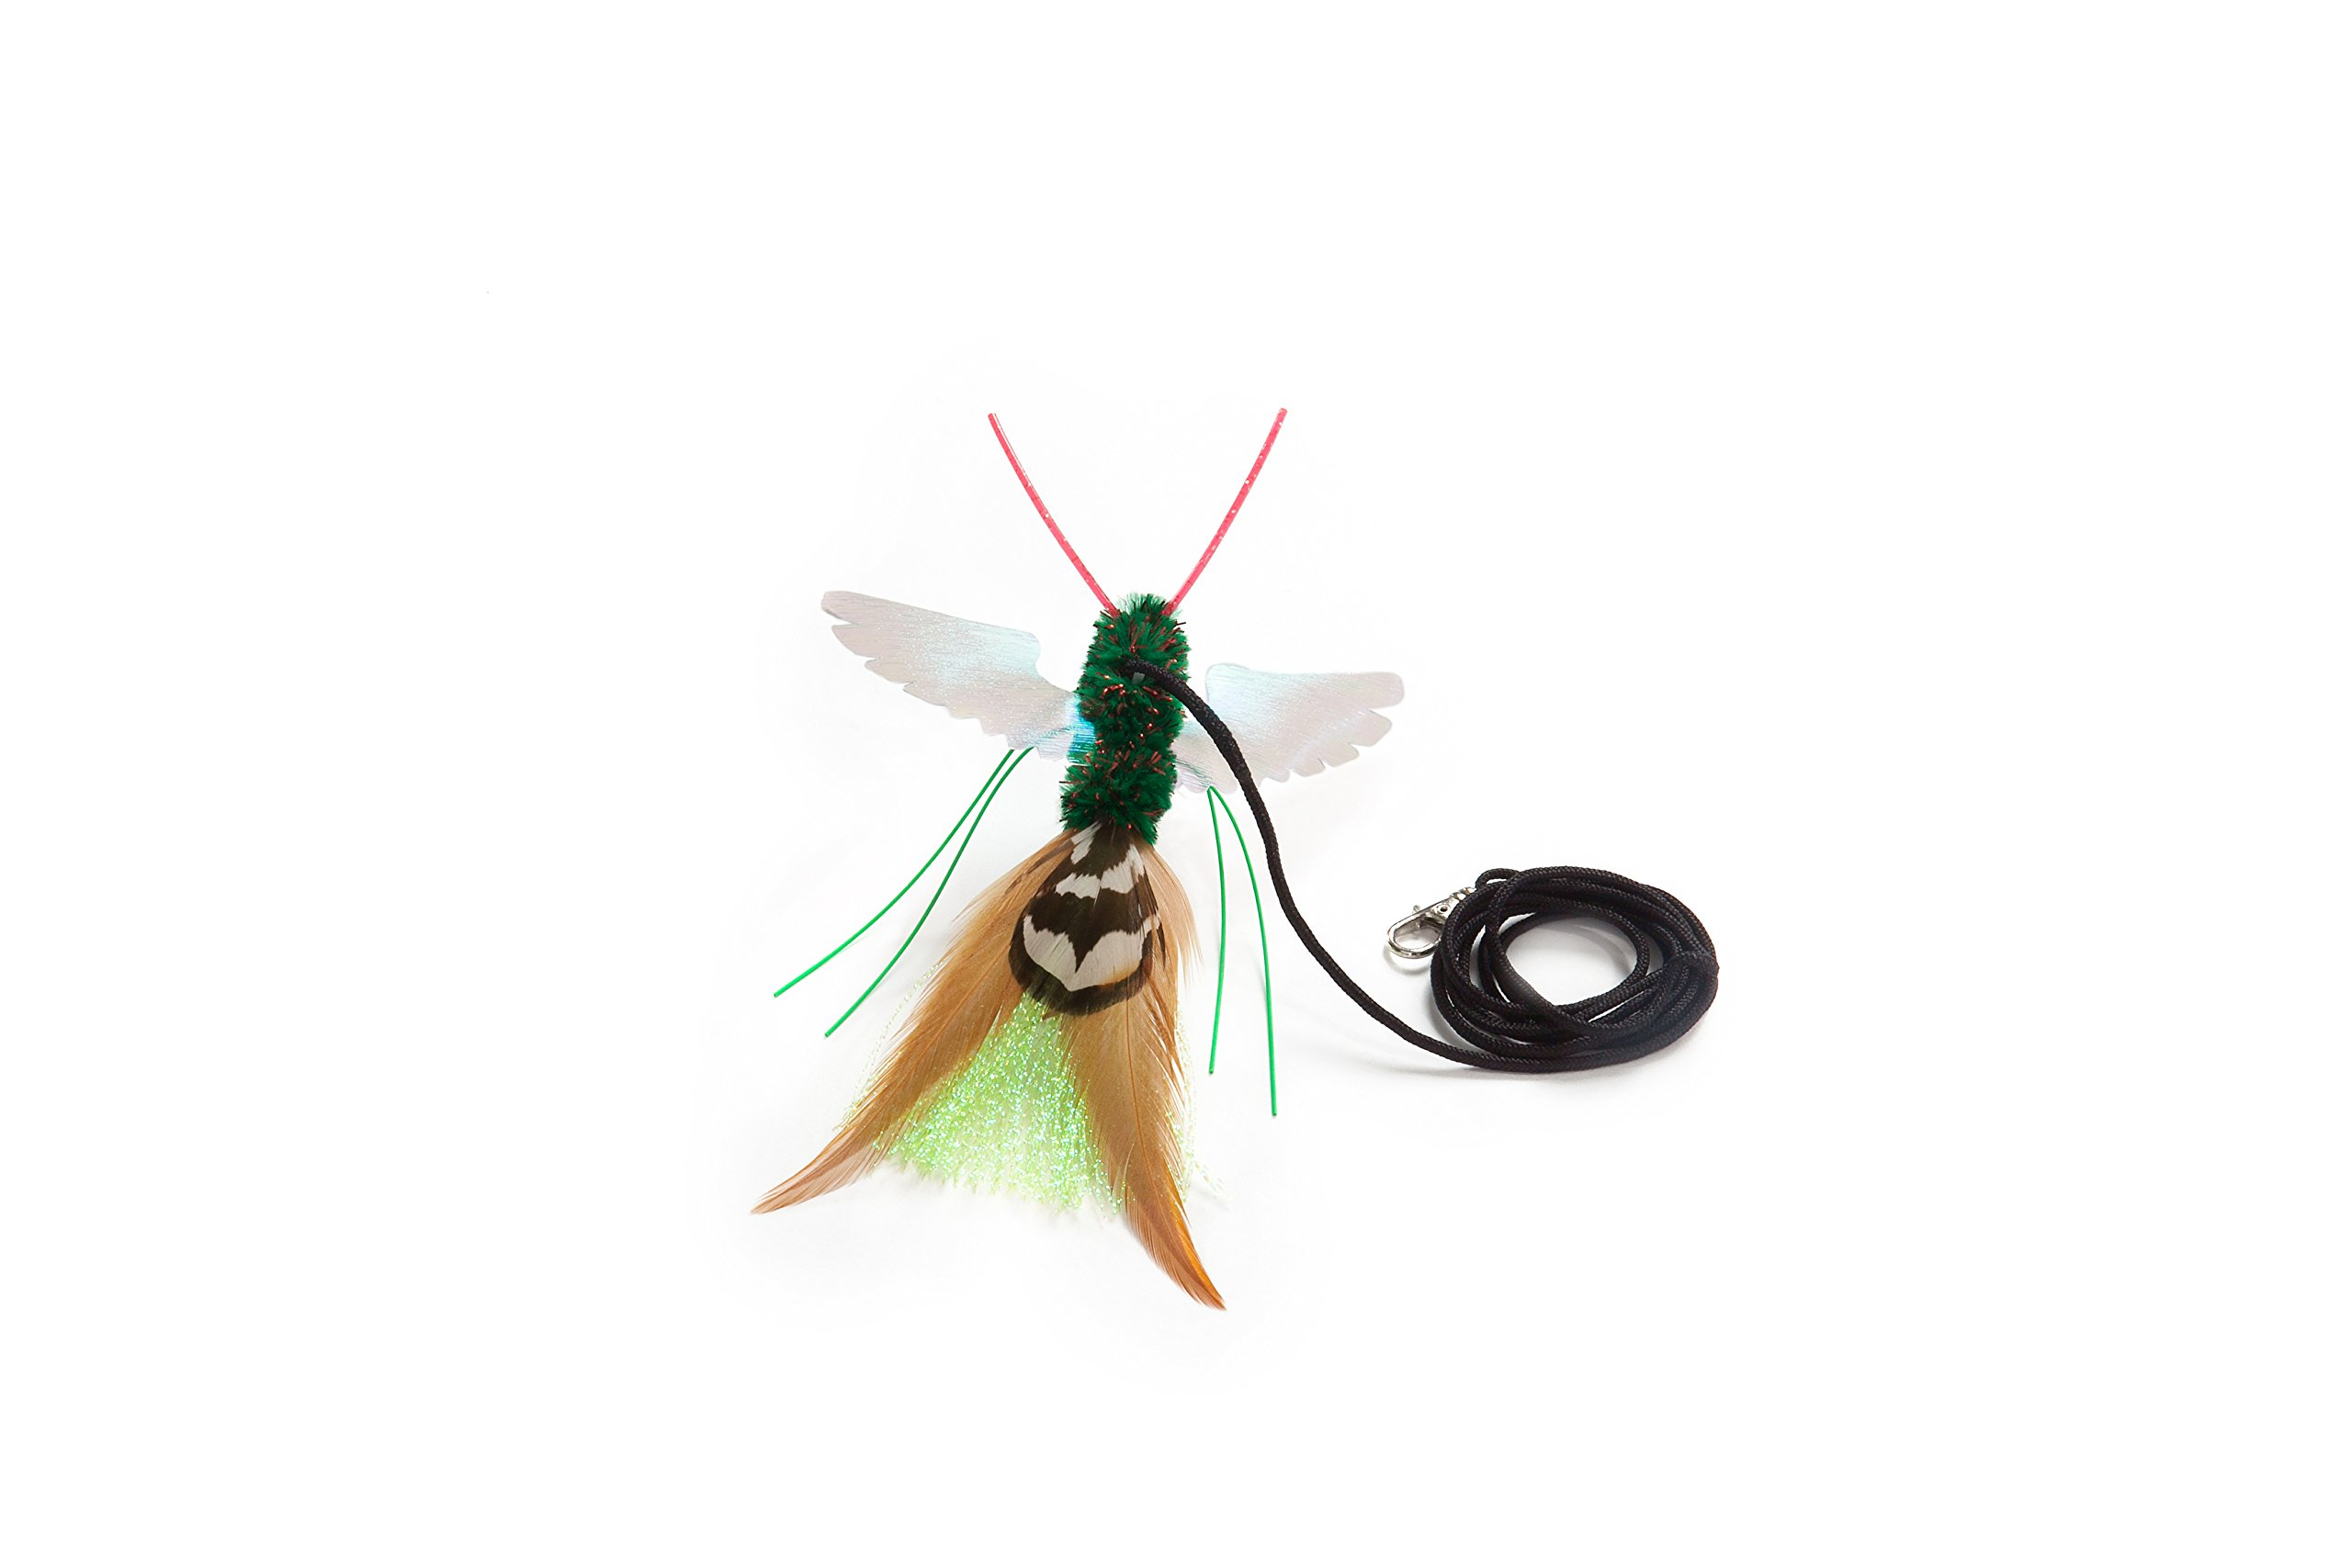 Neko Flies All New By the Maker of Its the Neko Birbug Cat Toy for Upwardly Mobile Cats!